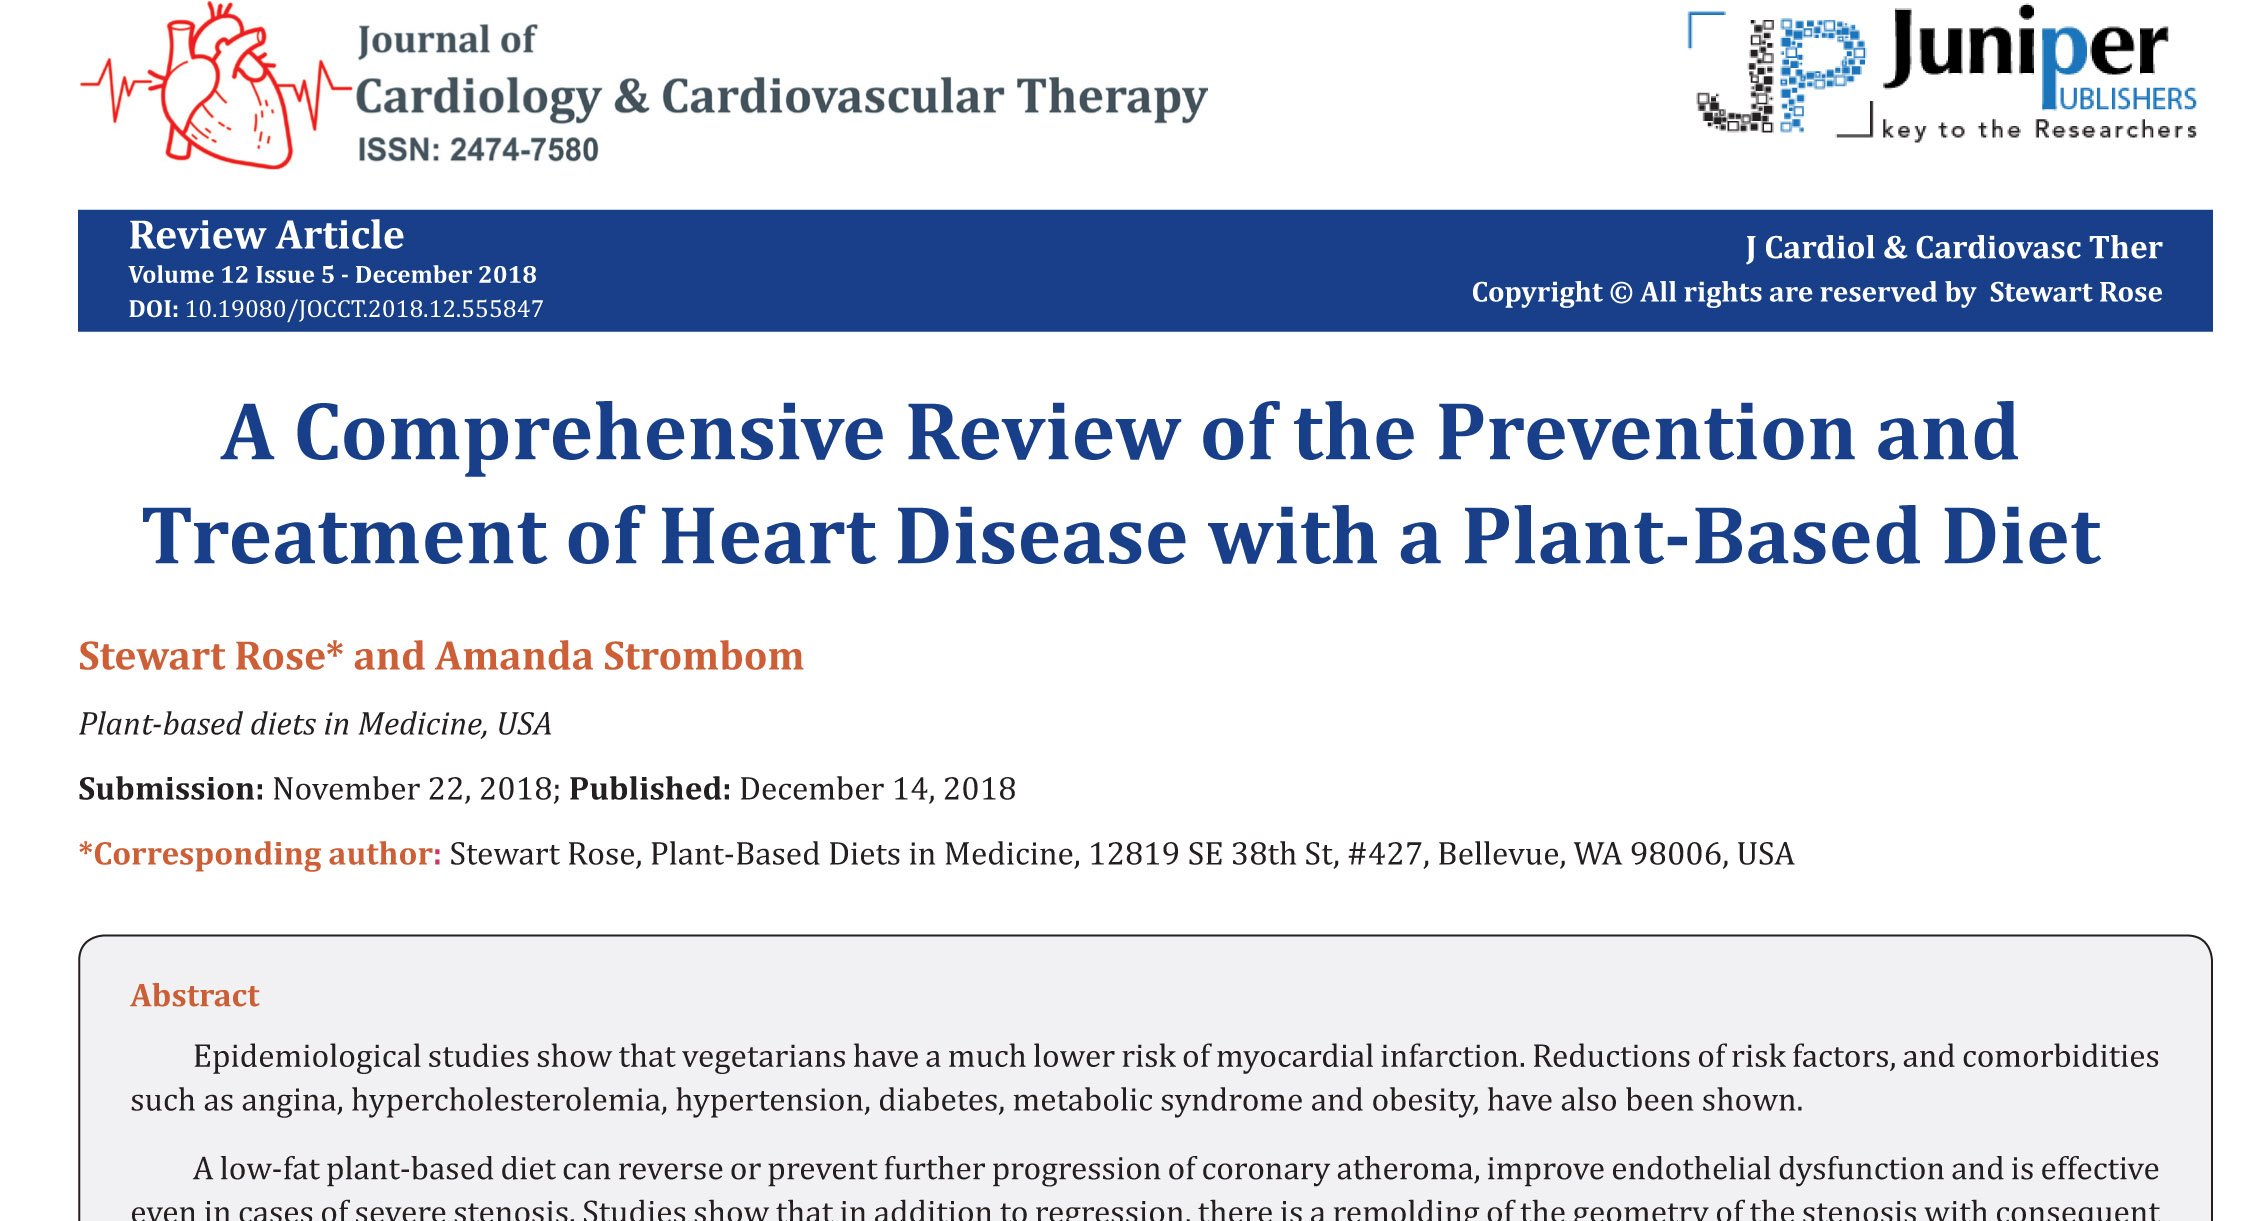 A Comprehensive Review of the Prevention and Treatment of Heart